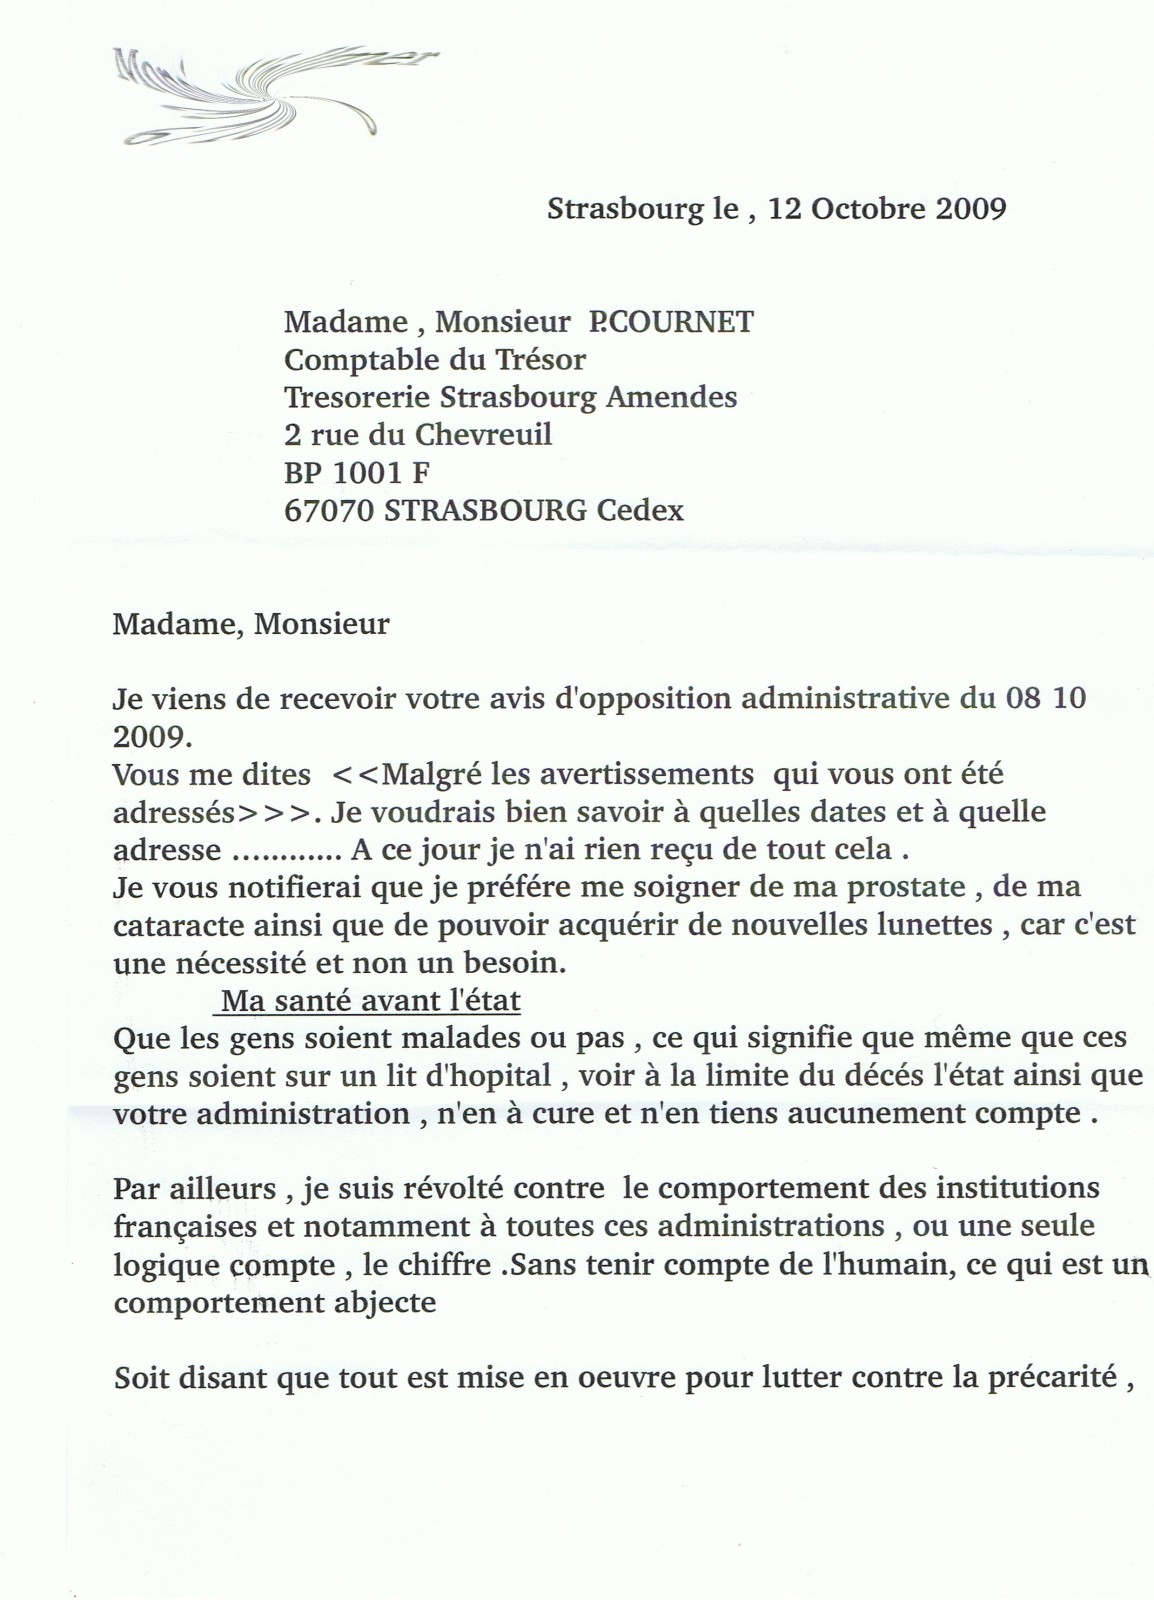 modele lettre contestation opposition administrative